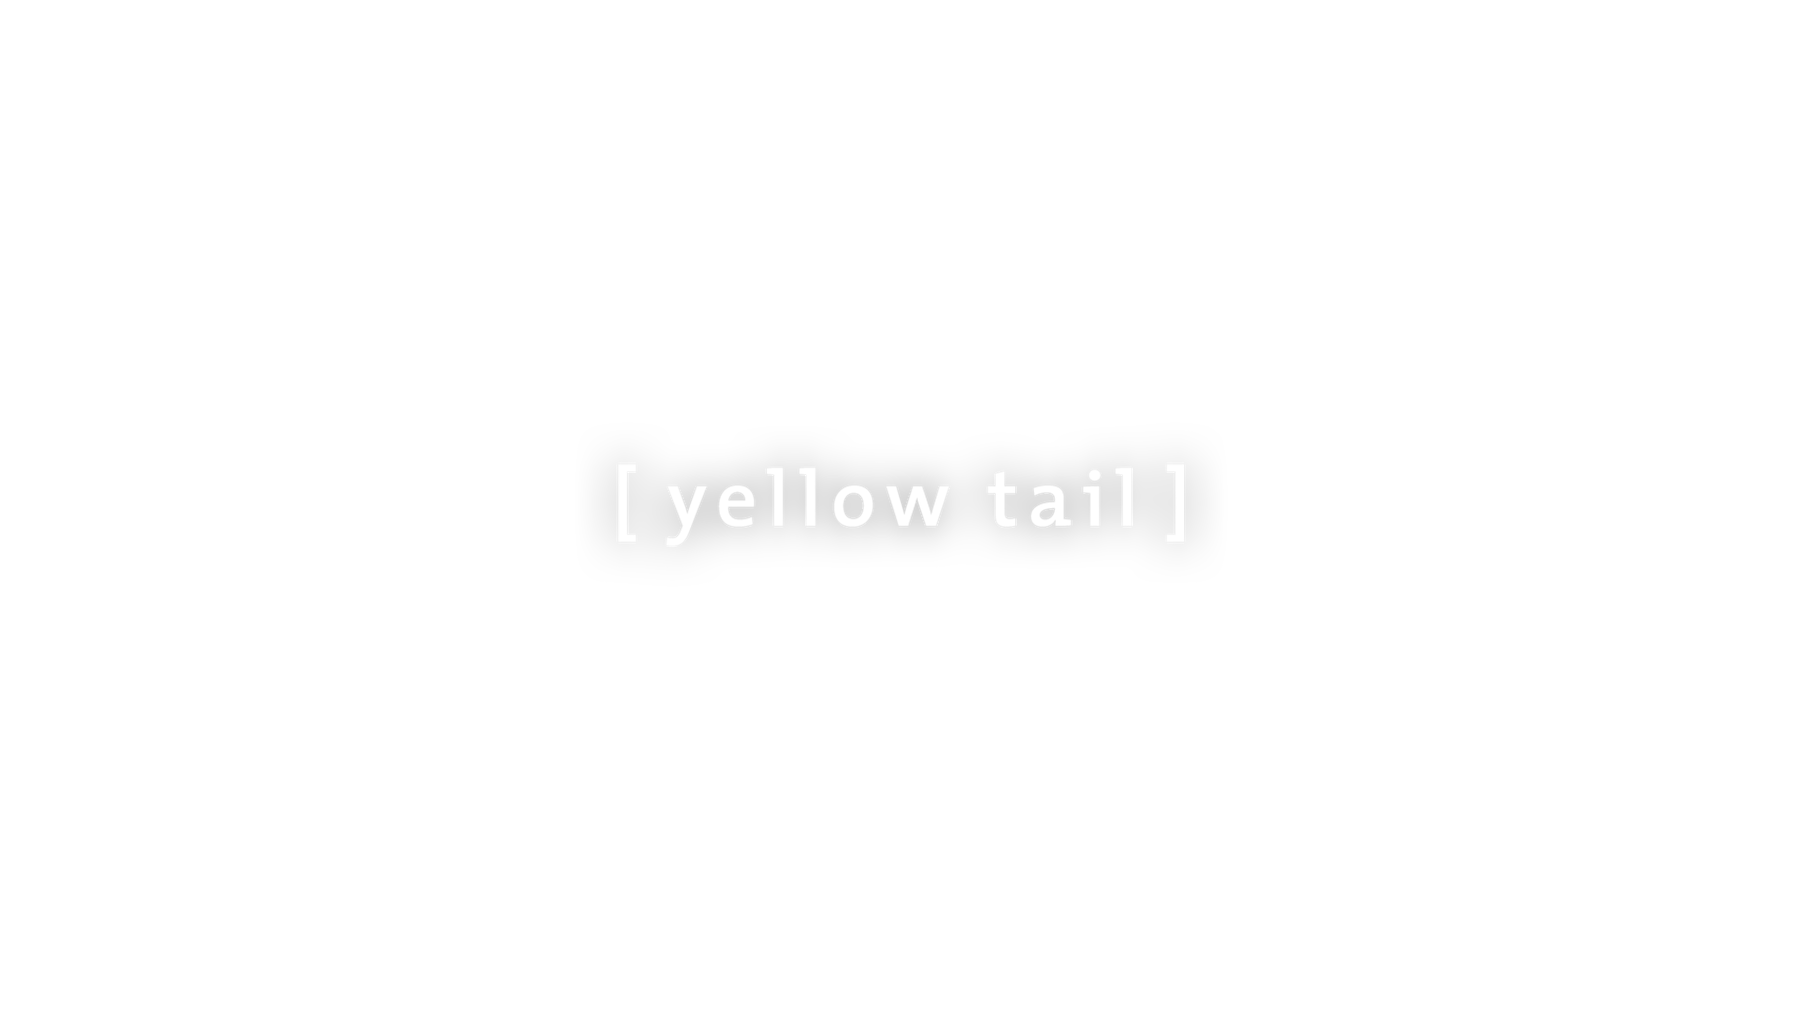 Yellow tail logo center